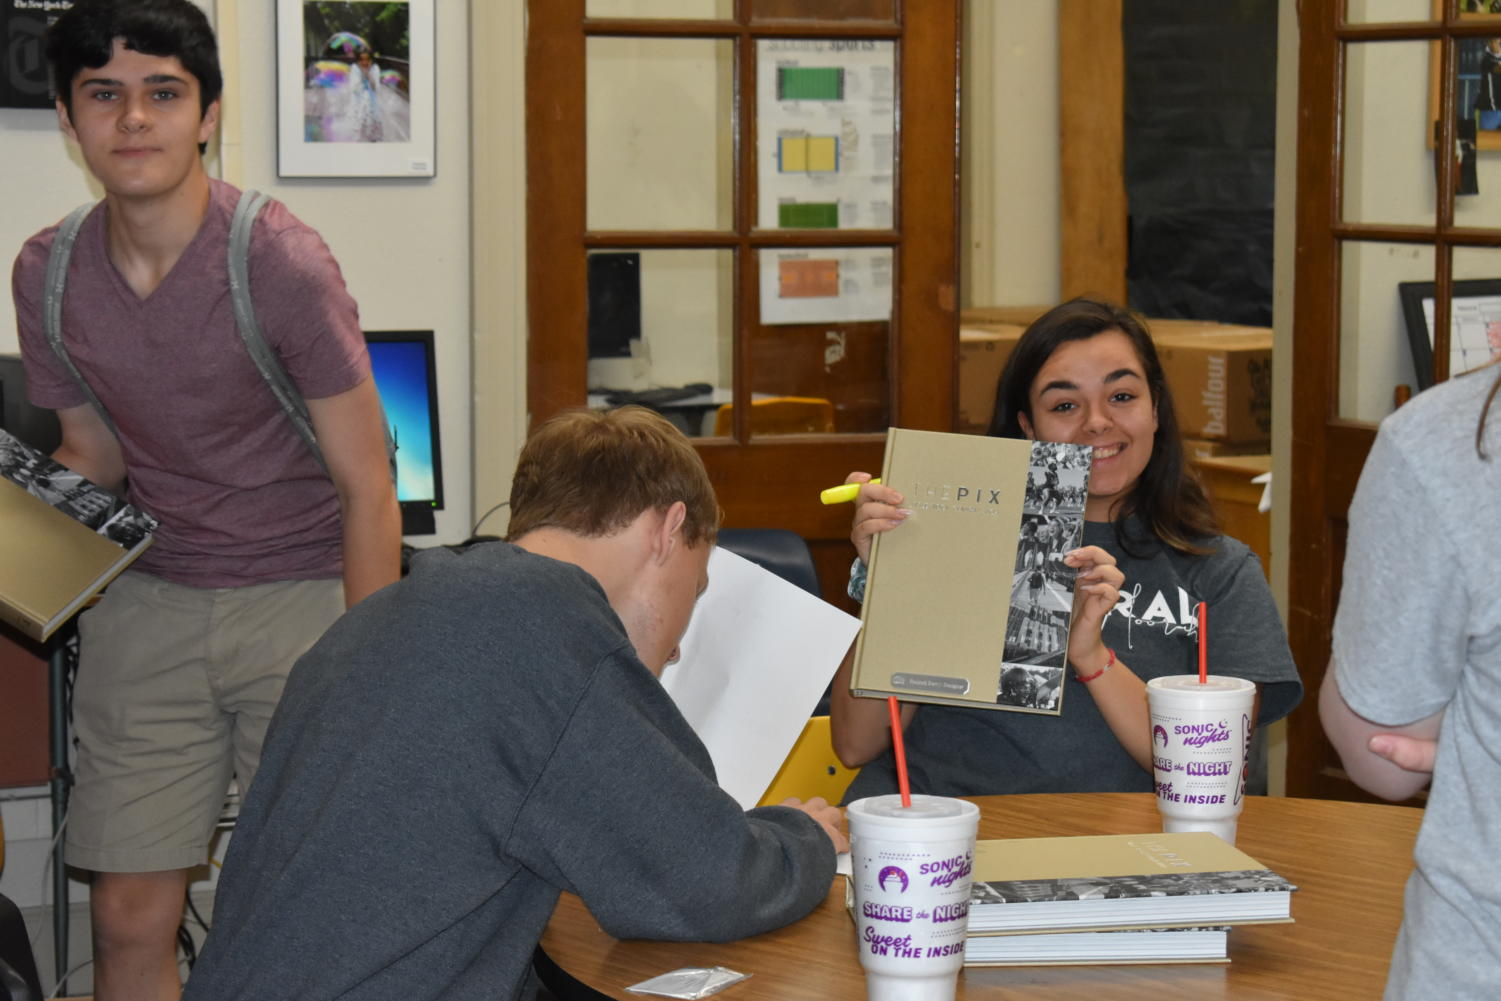 Hannah Berry helps distribute the 2018-2019 yearbook while other staffers, Carson Whaley and Alex Buller mark off names of those who already picked up their yearbook.